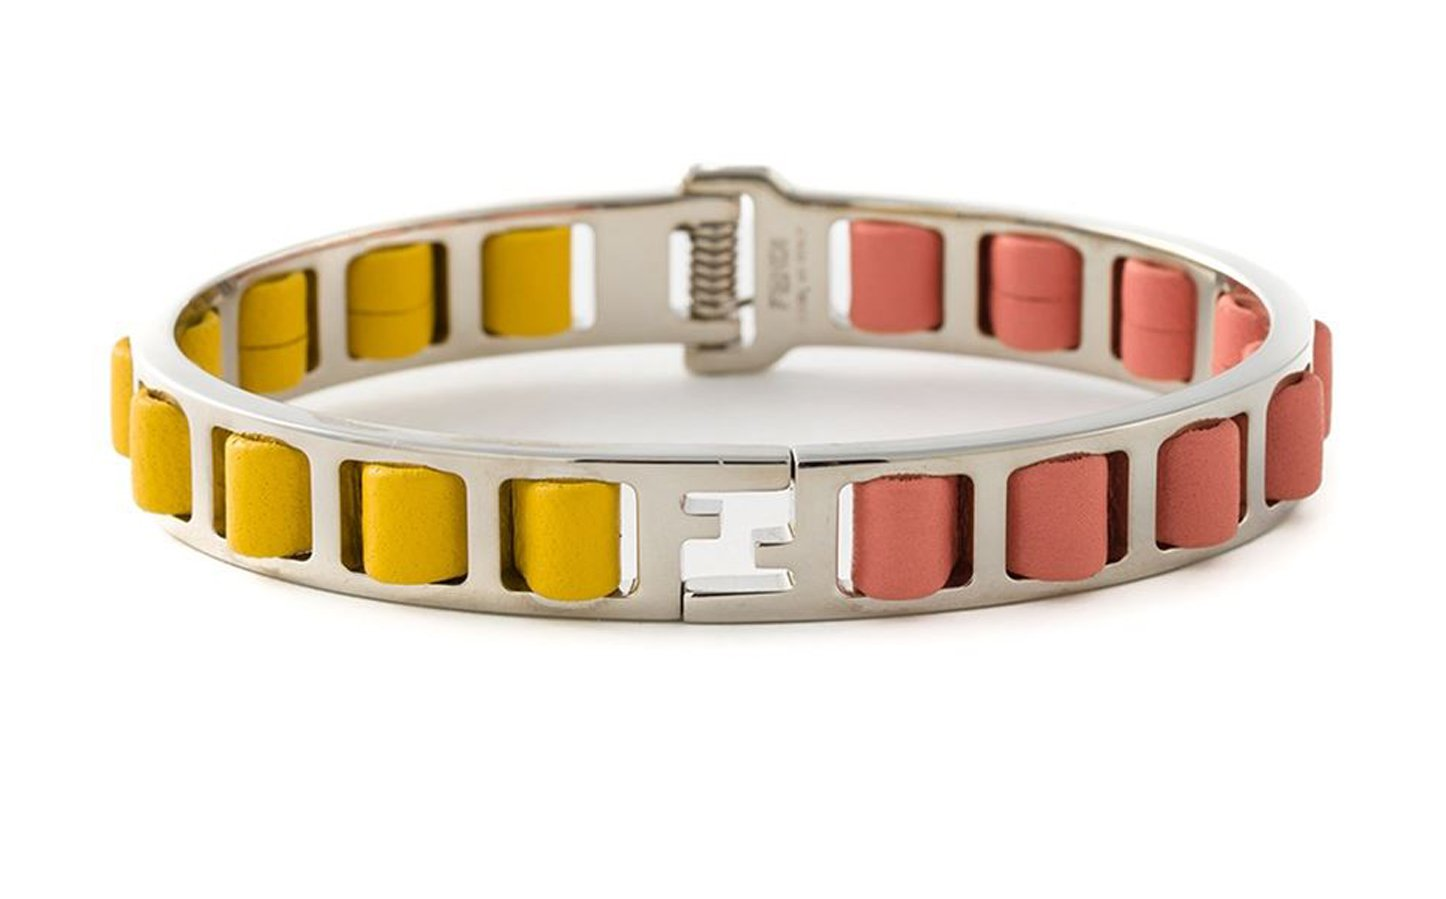 Fendi 'The Fendista' bangle Pink and Yellow Calfskin Leather Metal Bangle Bracelet by Fendi